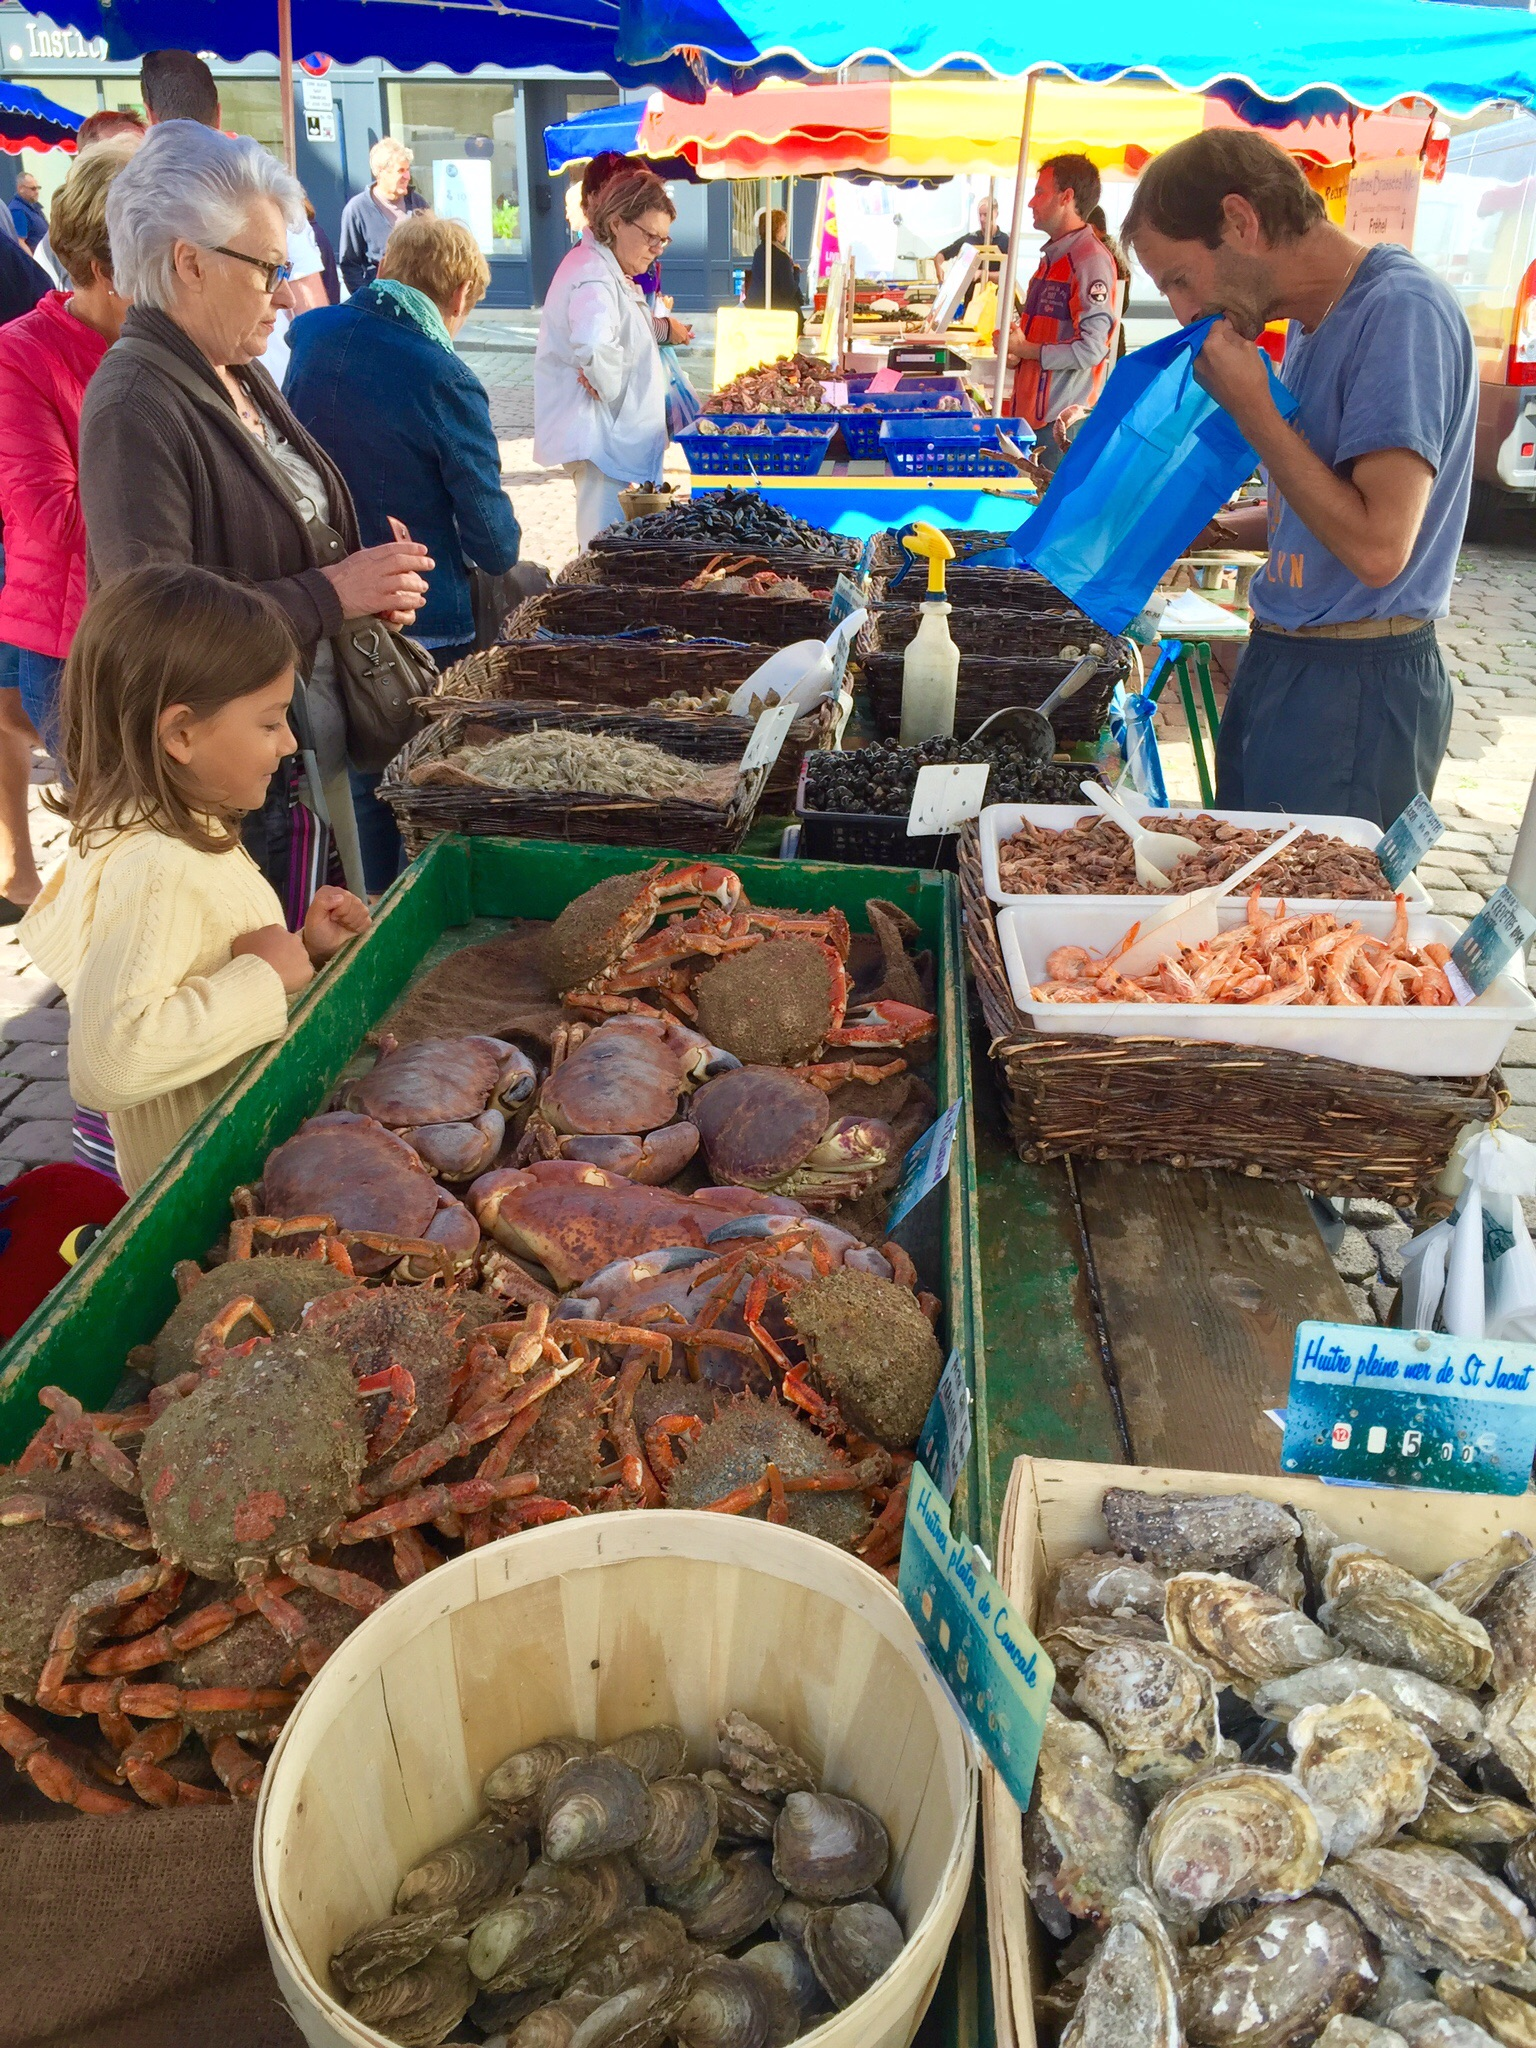 Checking out the seafood at an open-air market in   Bretagne, France